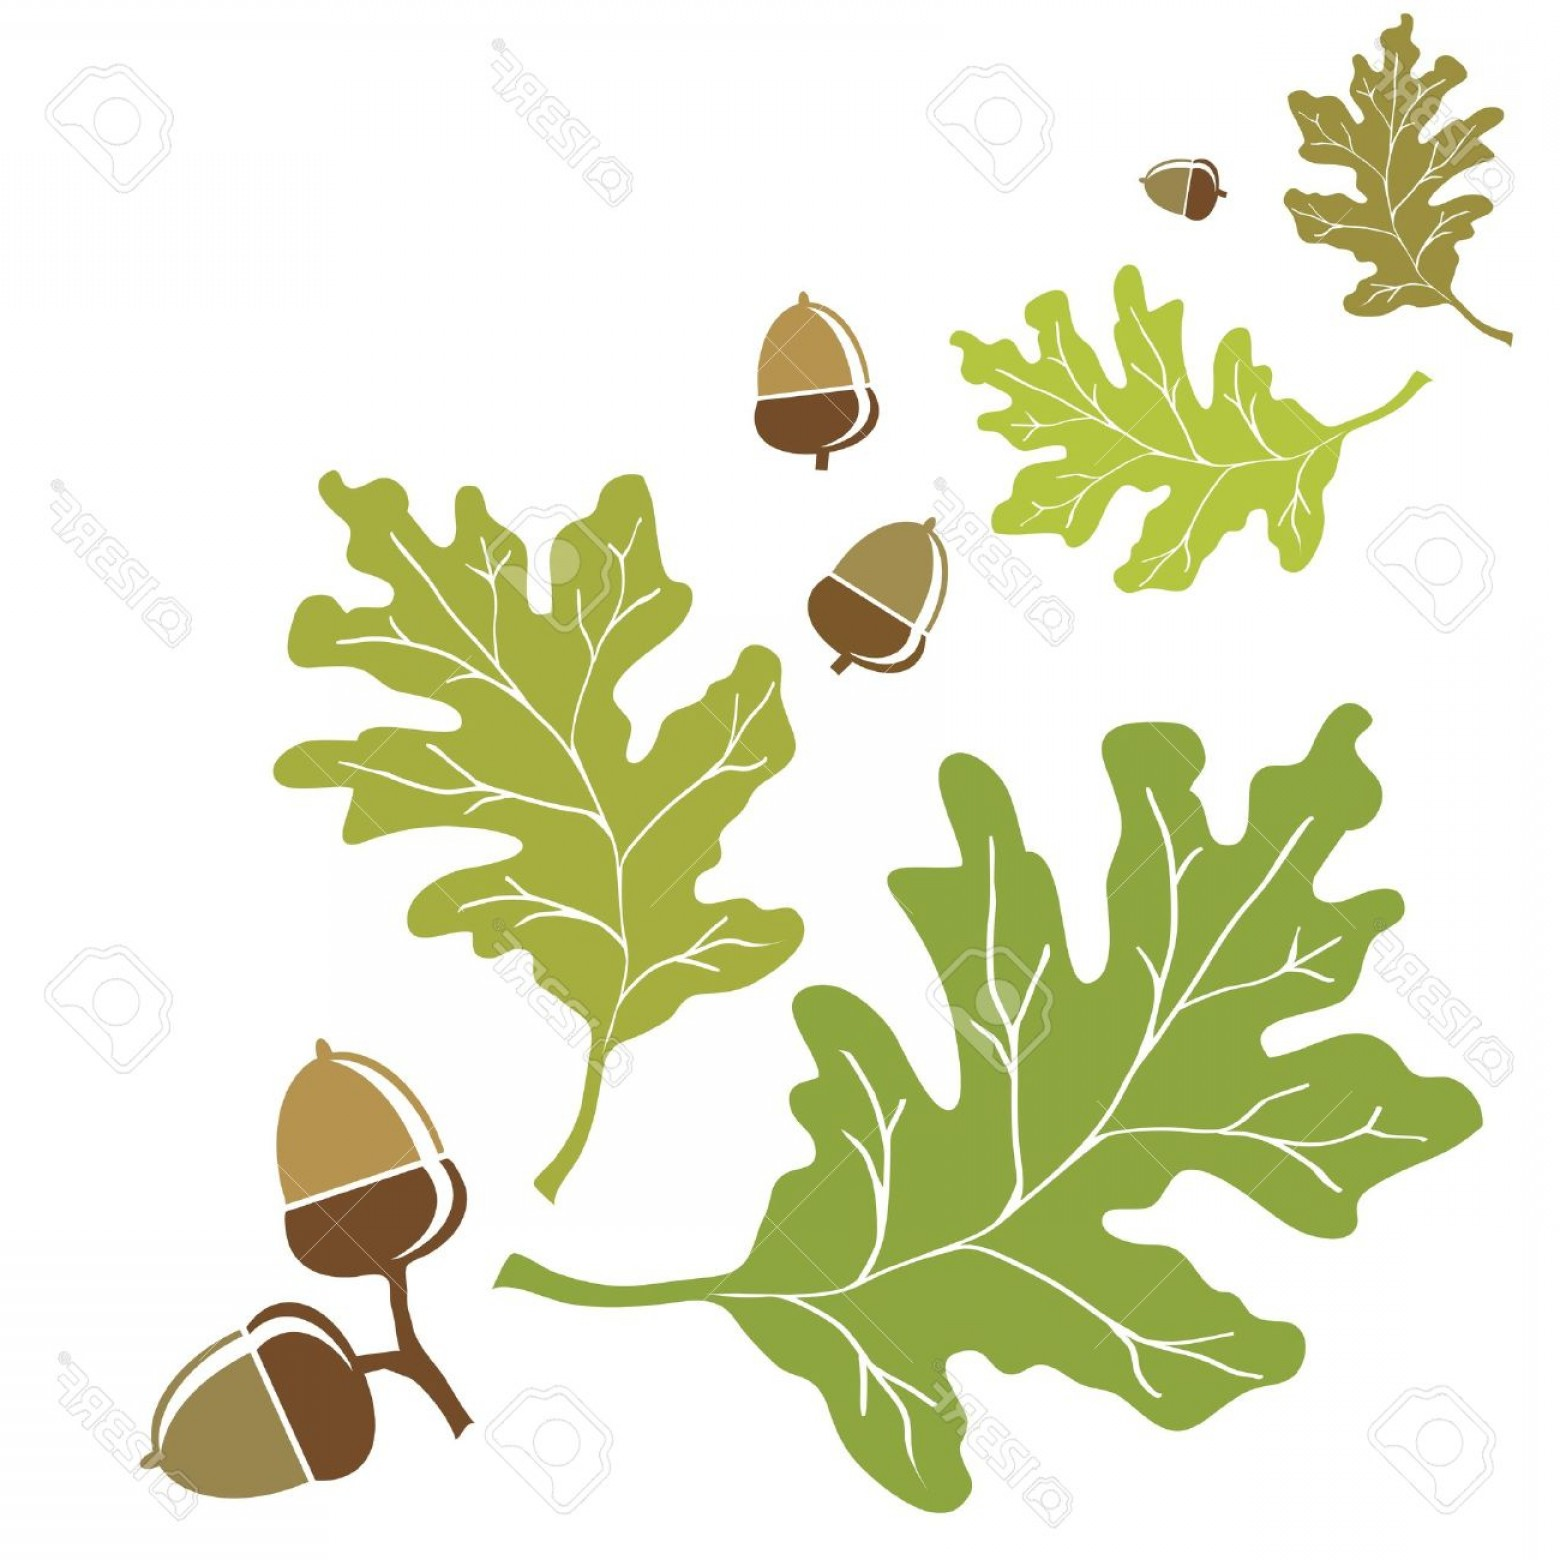 Oak Leaf Vector Clip Art | CreateMePink